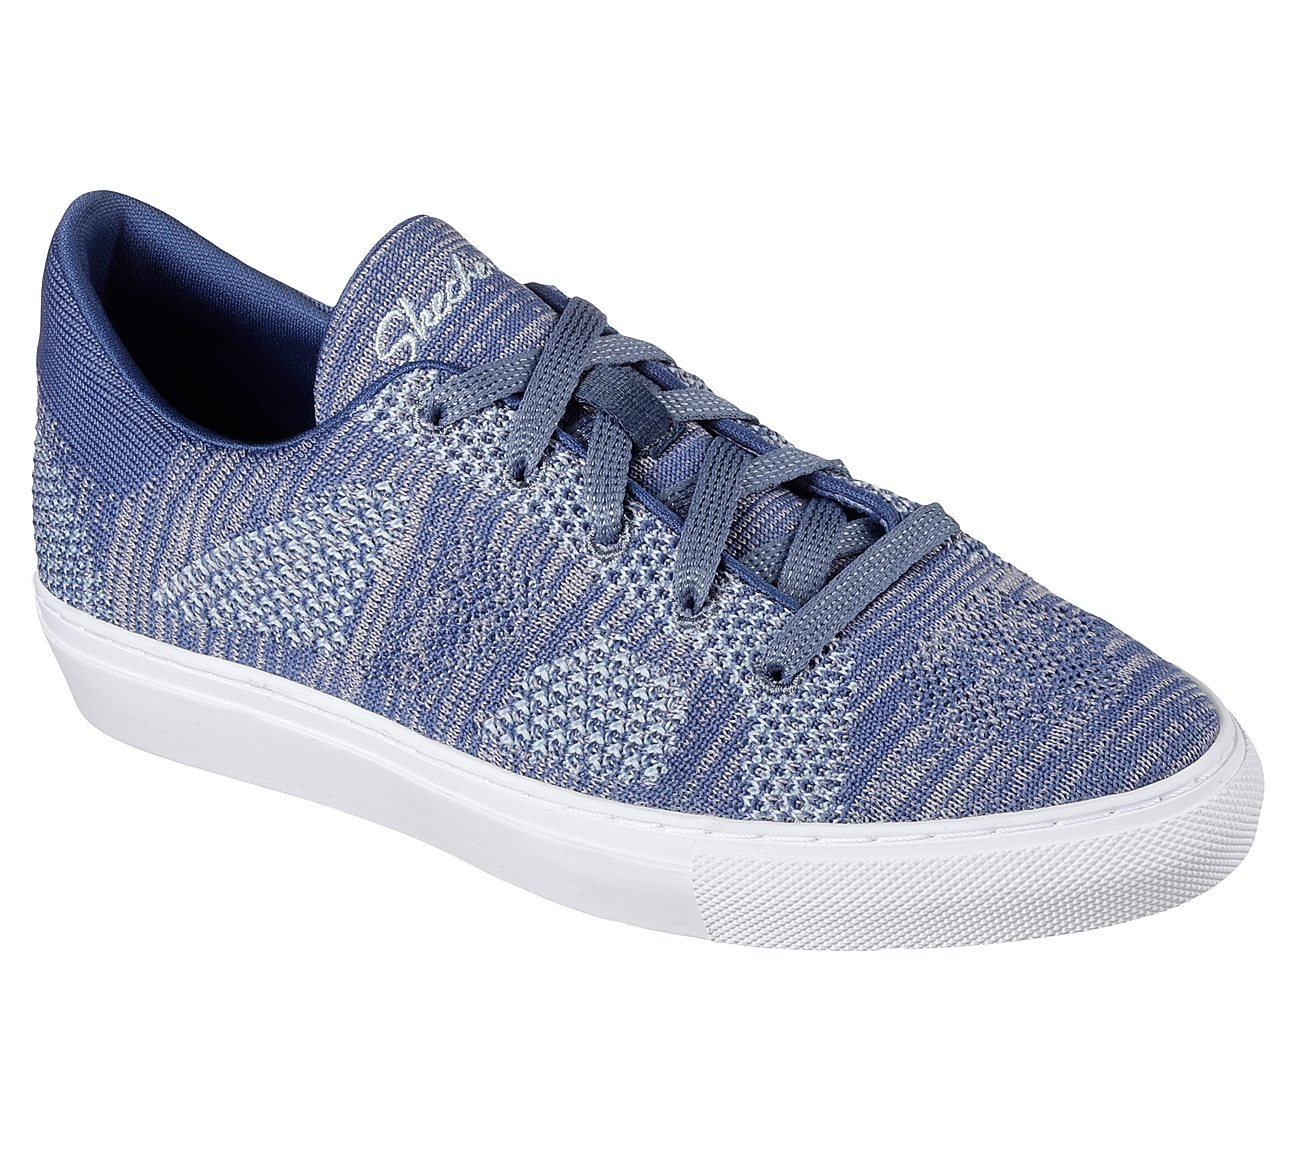 Skechers Vaso De Moda Womens Sneakers Blue 9.5